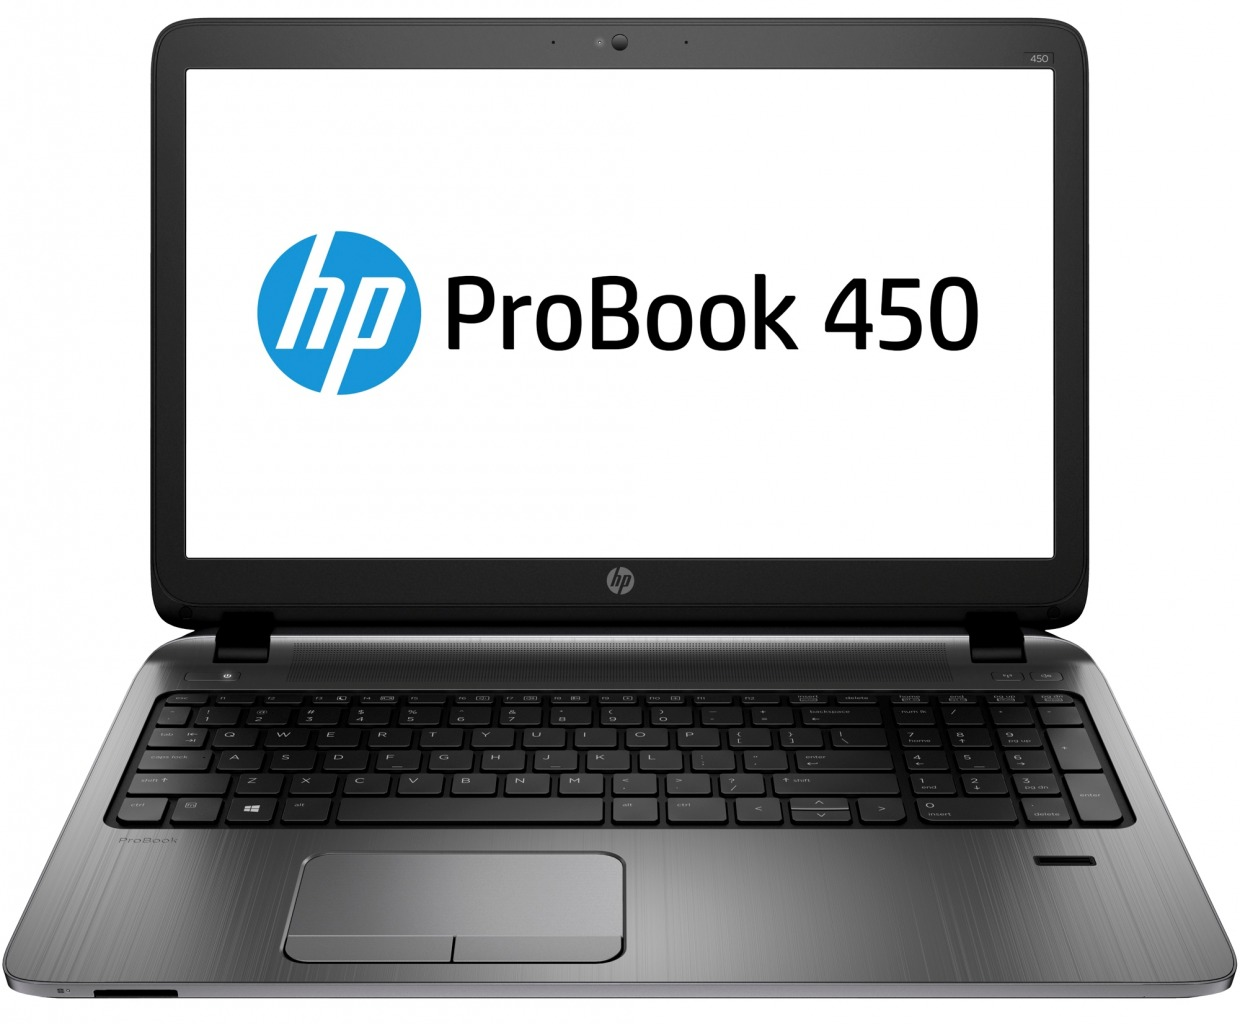 laptop hp probook 450 g2.jpg